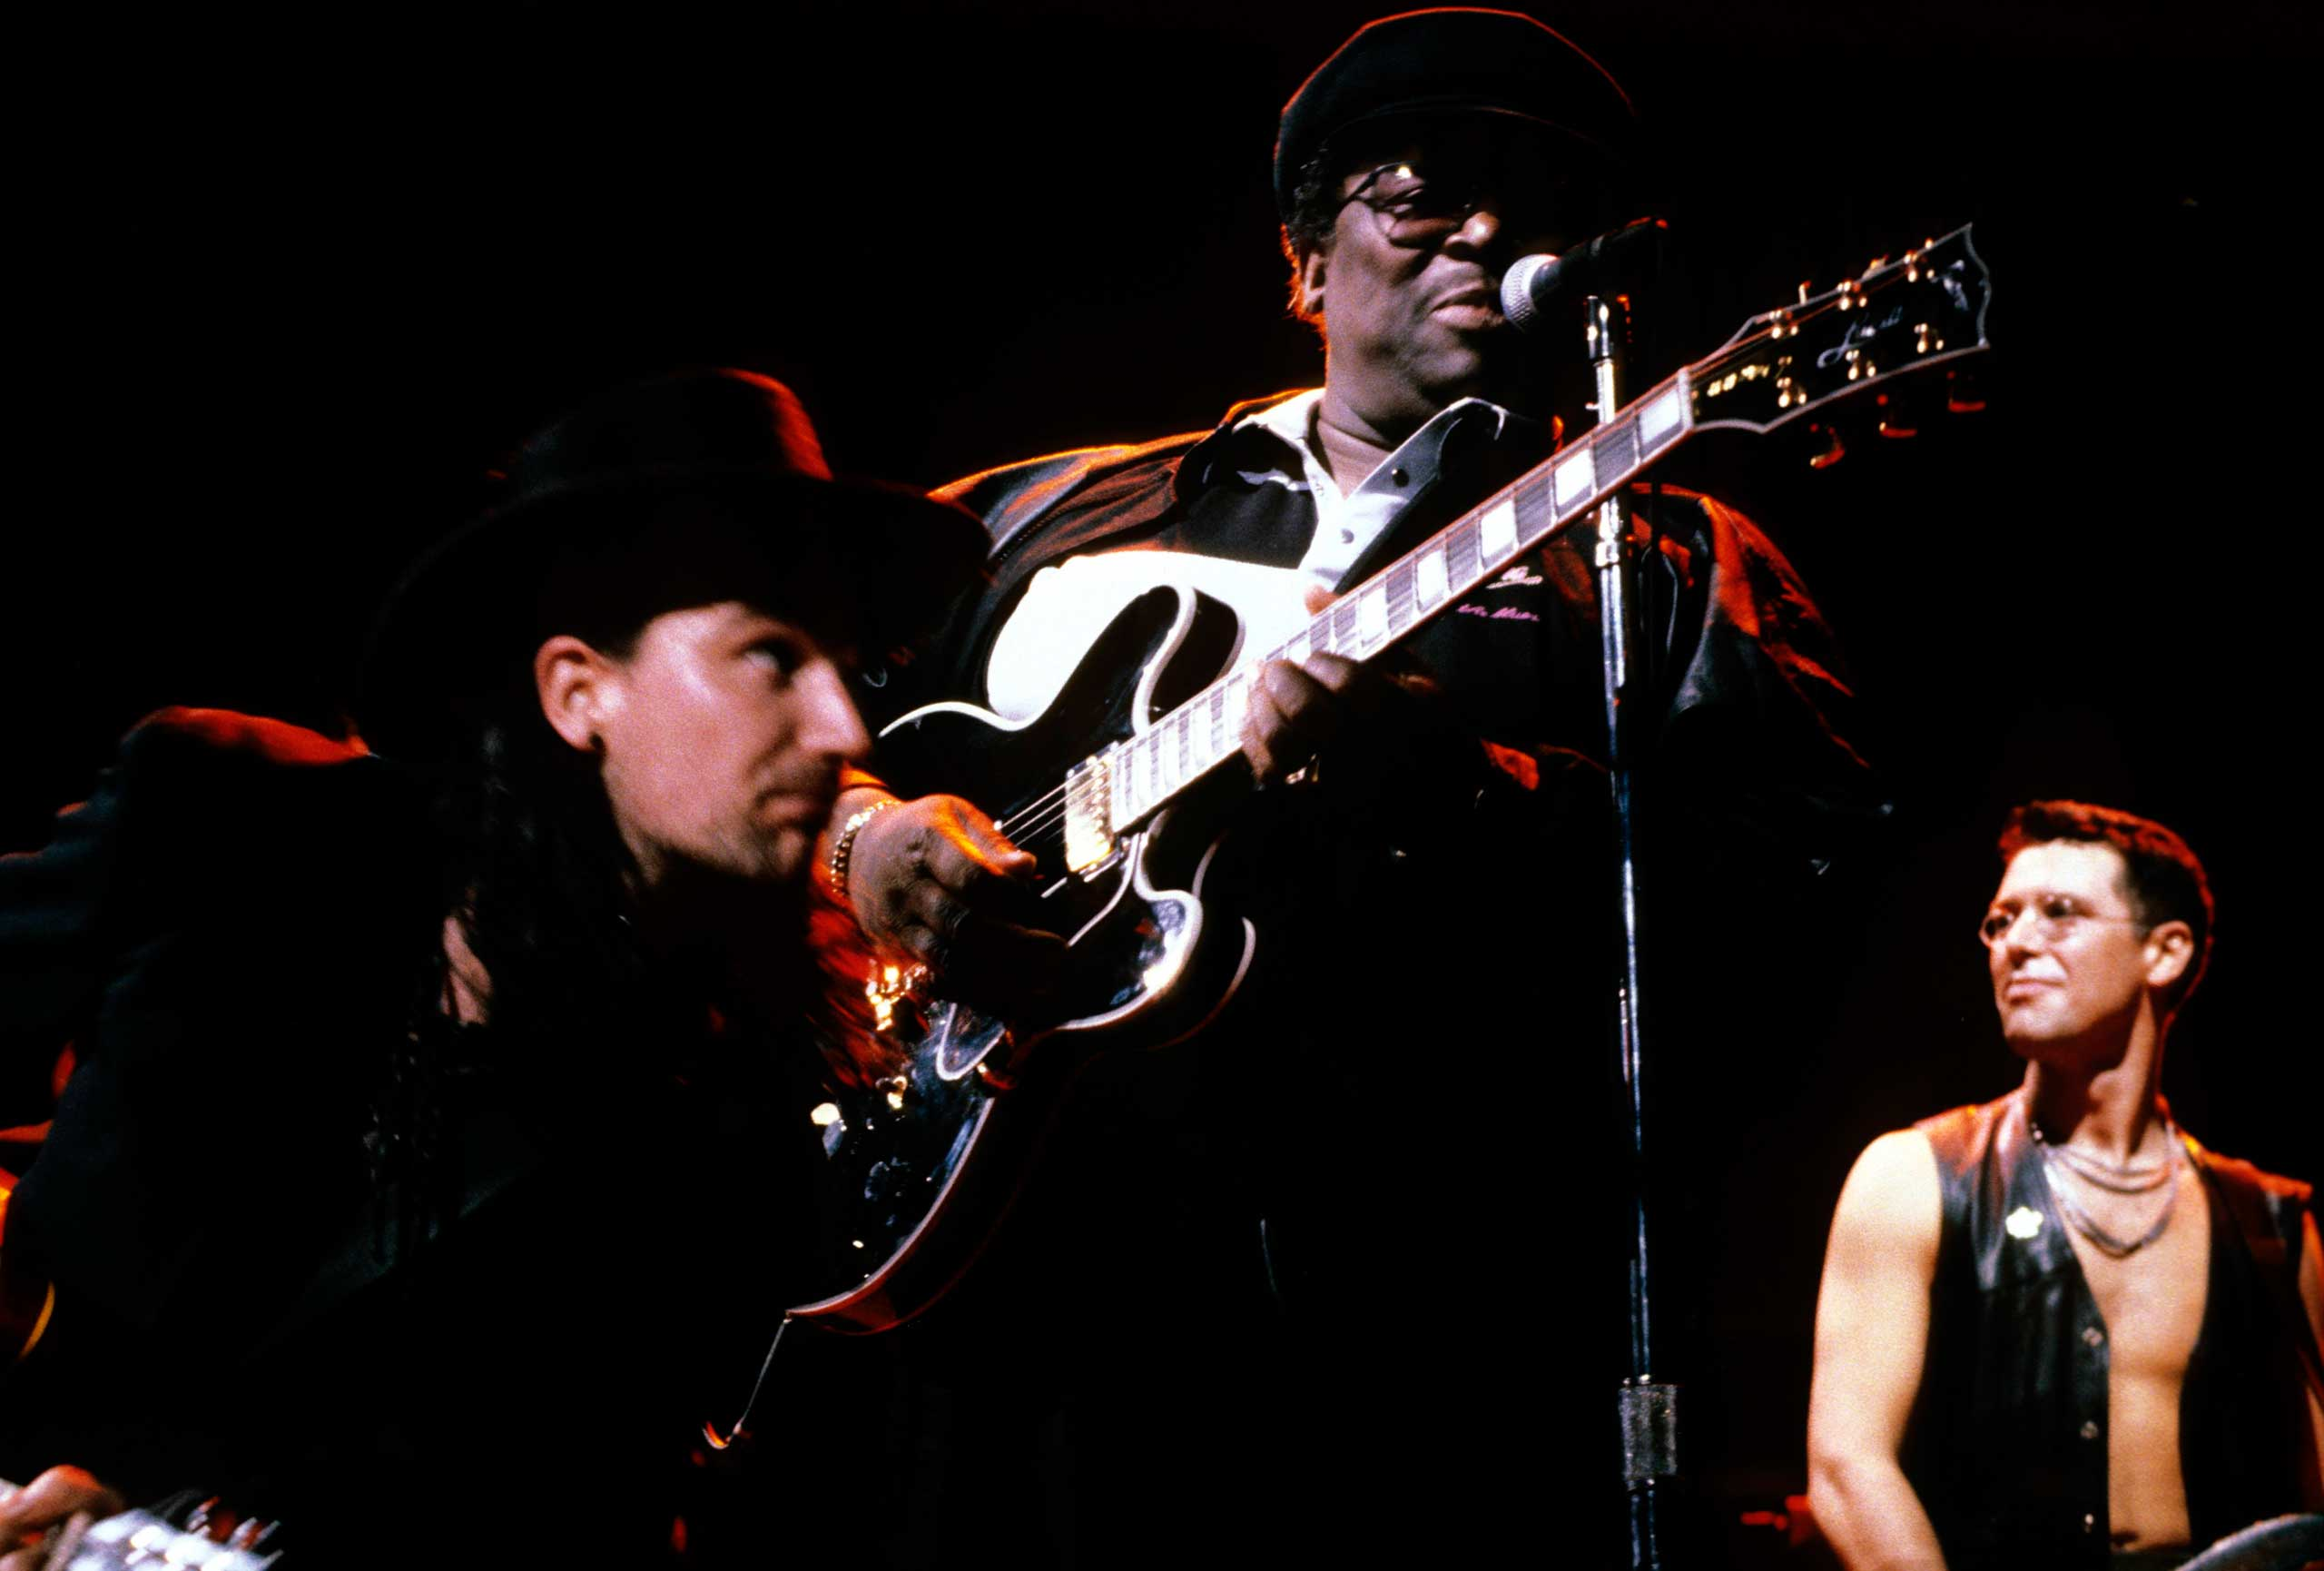 From Left: U2 and B.B. King perform onstage during The Lovetown tour on Sept. 1, 1989 in Australia.